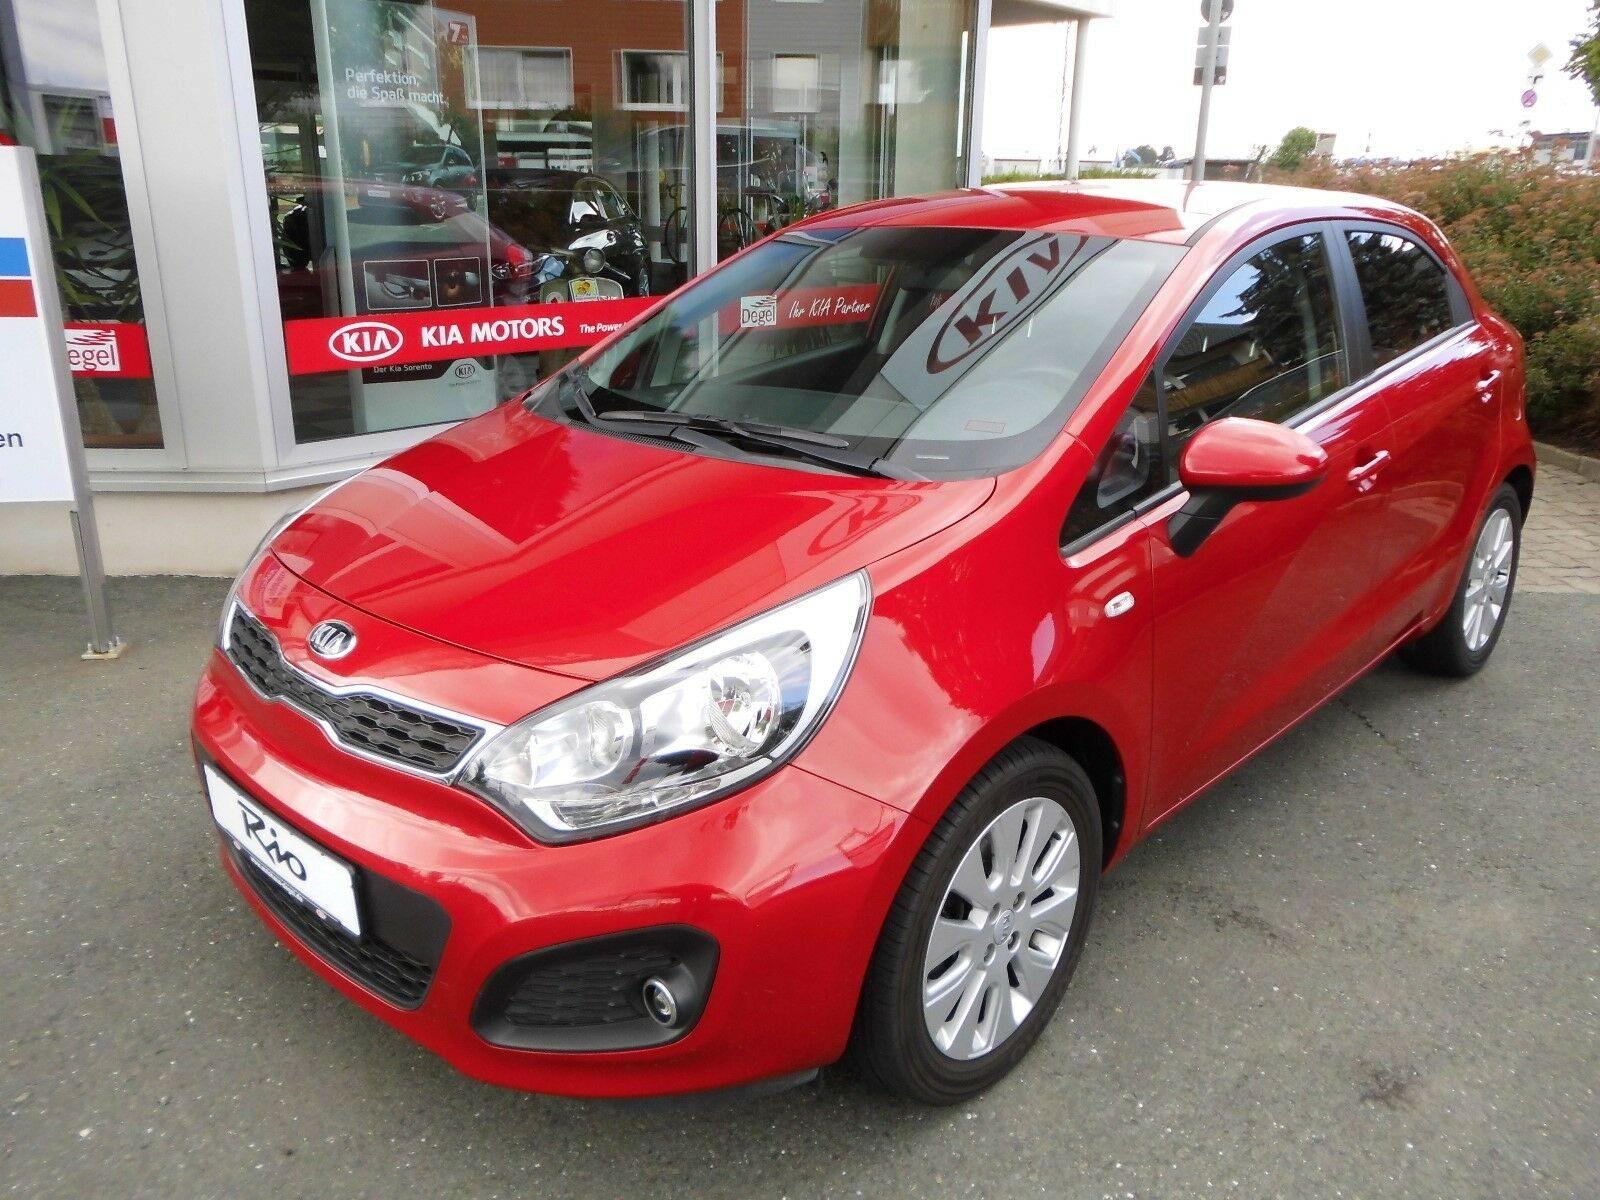 Kia Rio 1.2 FIFA World Cup Edition